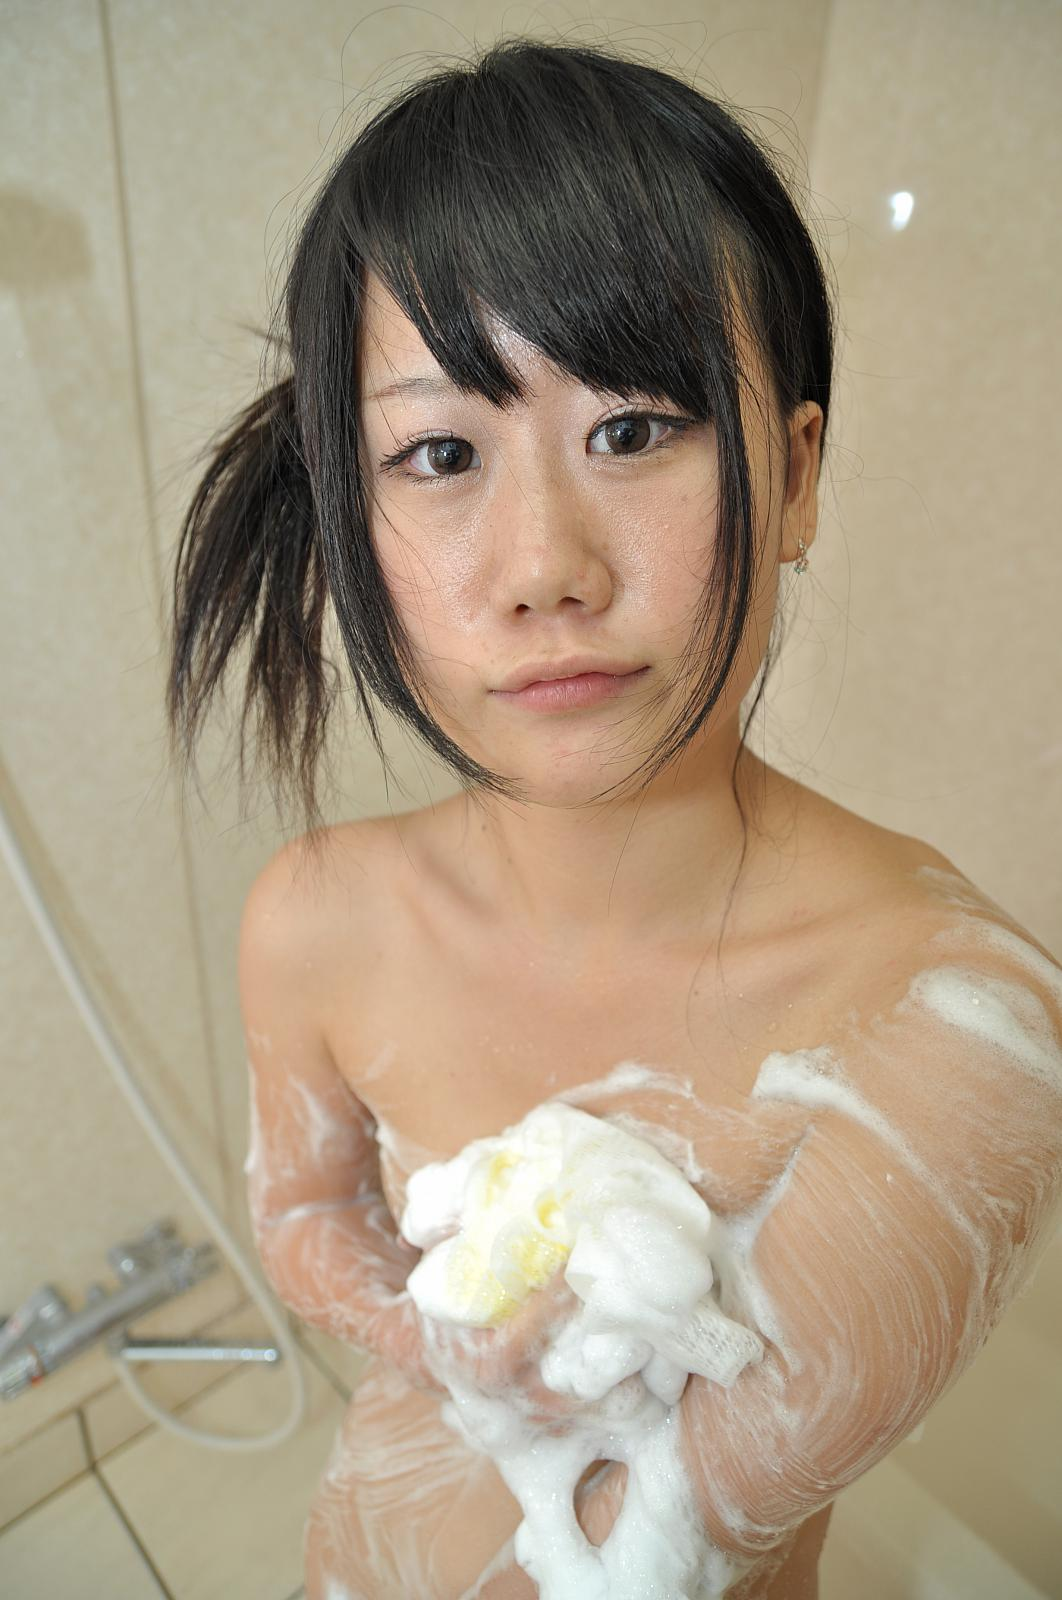 Yuka Kojima Loves Soapy Bubbles Aginst Her Tiny Body